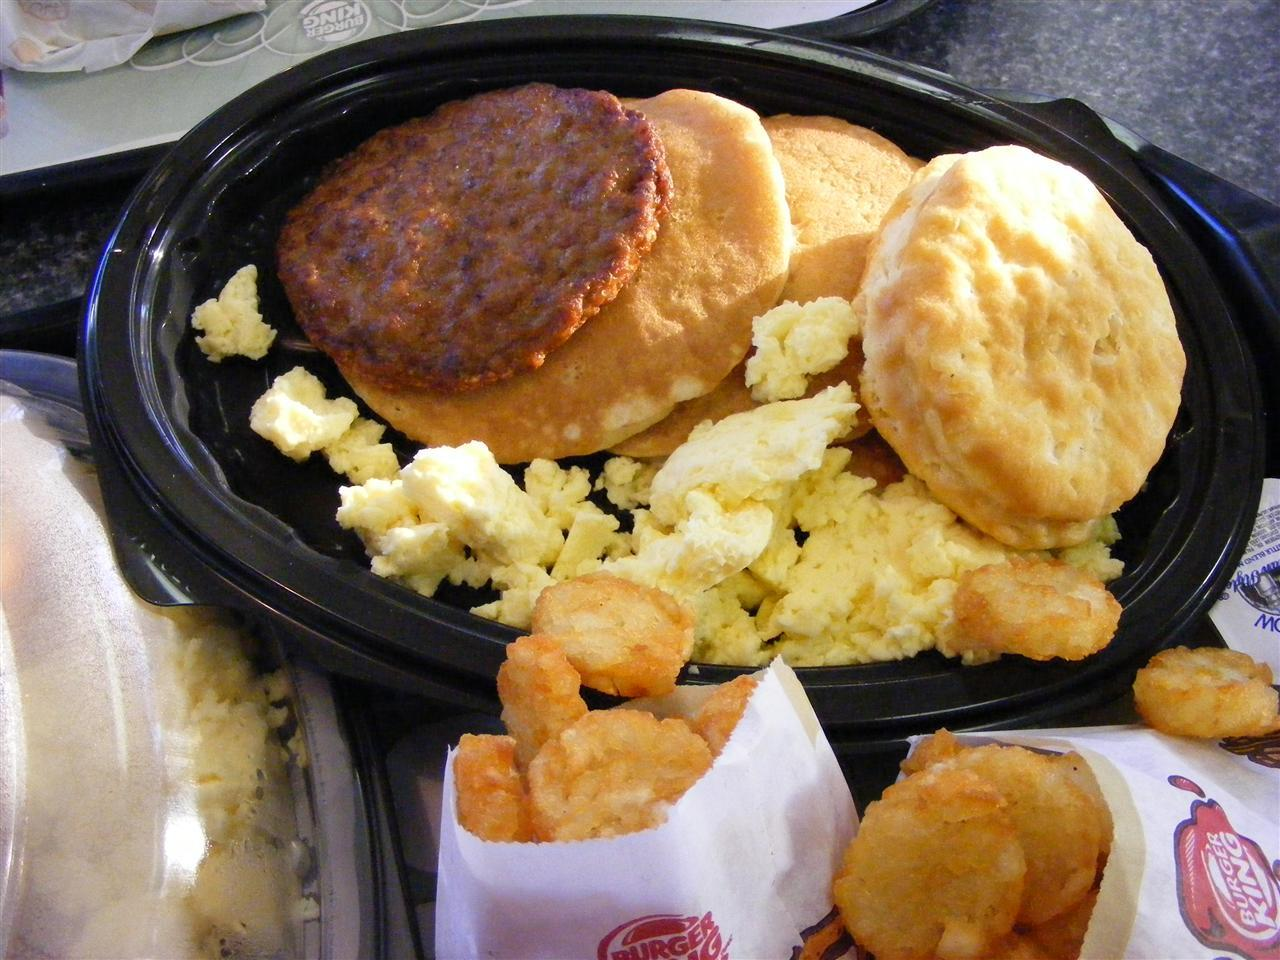 Burger King Drive Thru Breakfast The Most Unhealthy Breakfasts From Across The Country